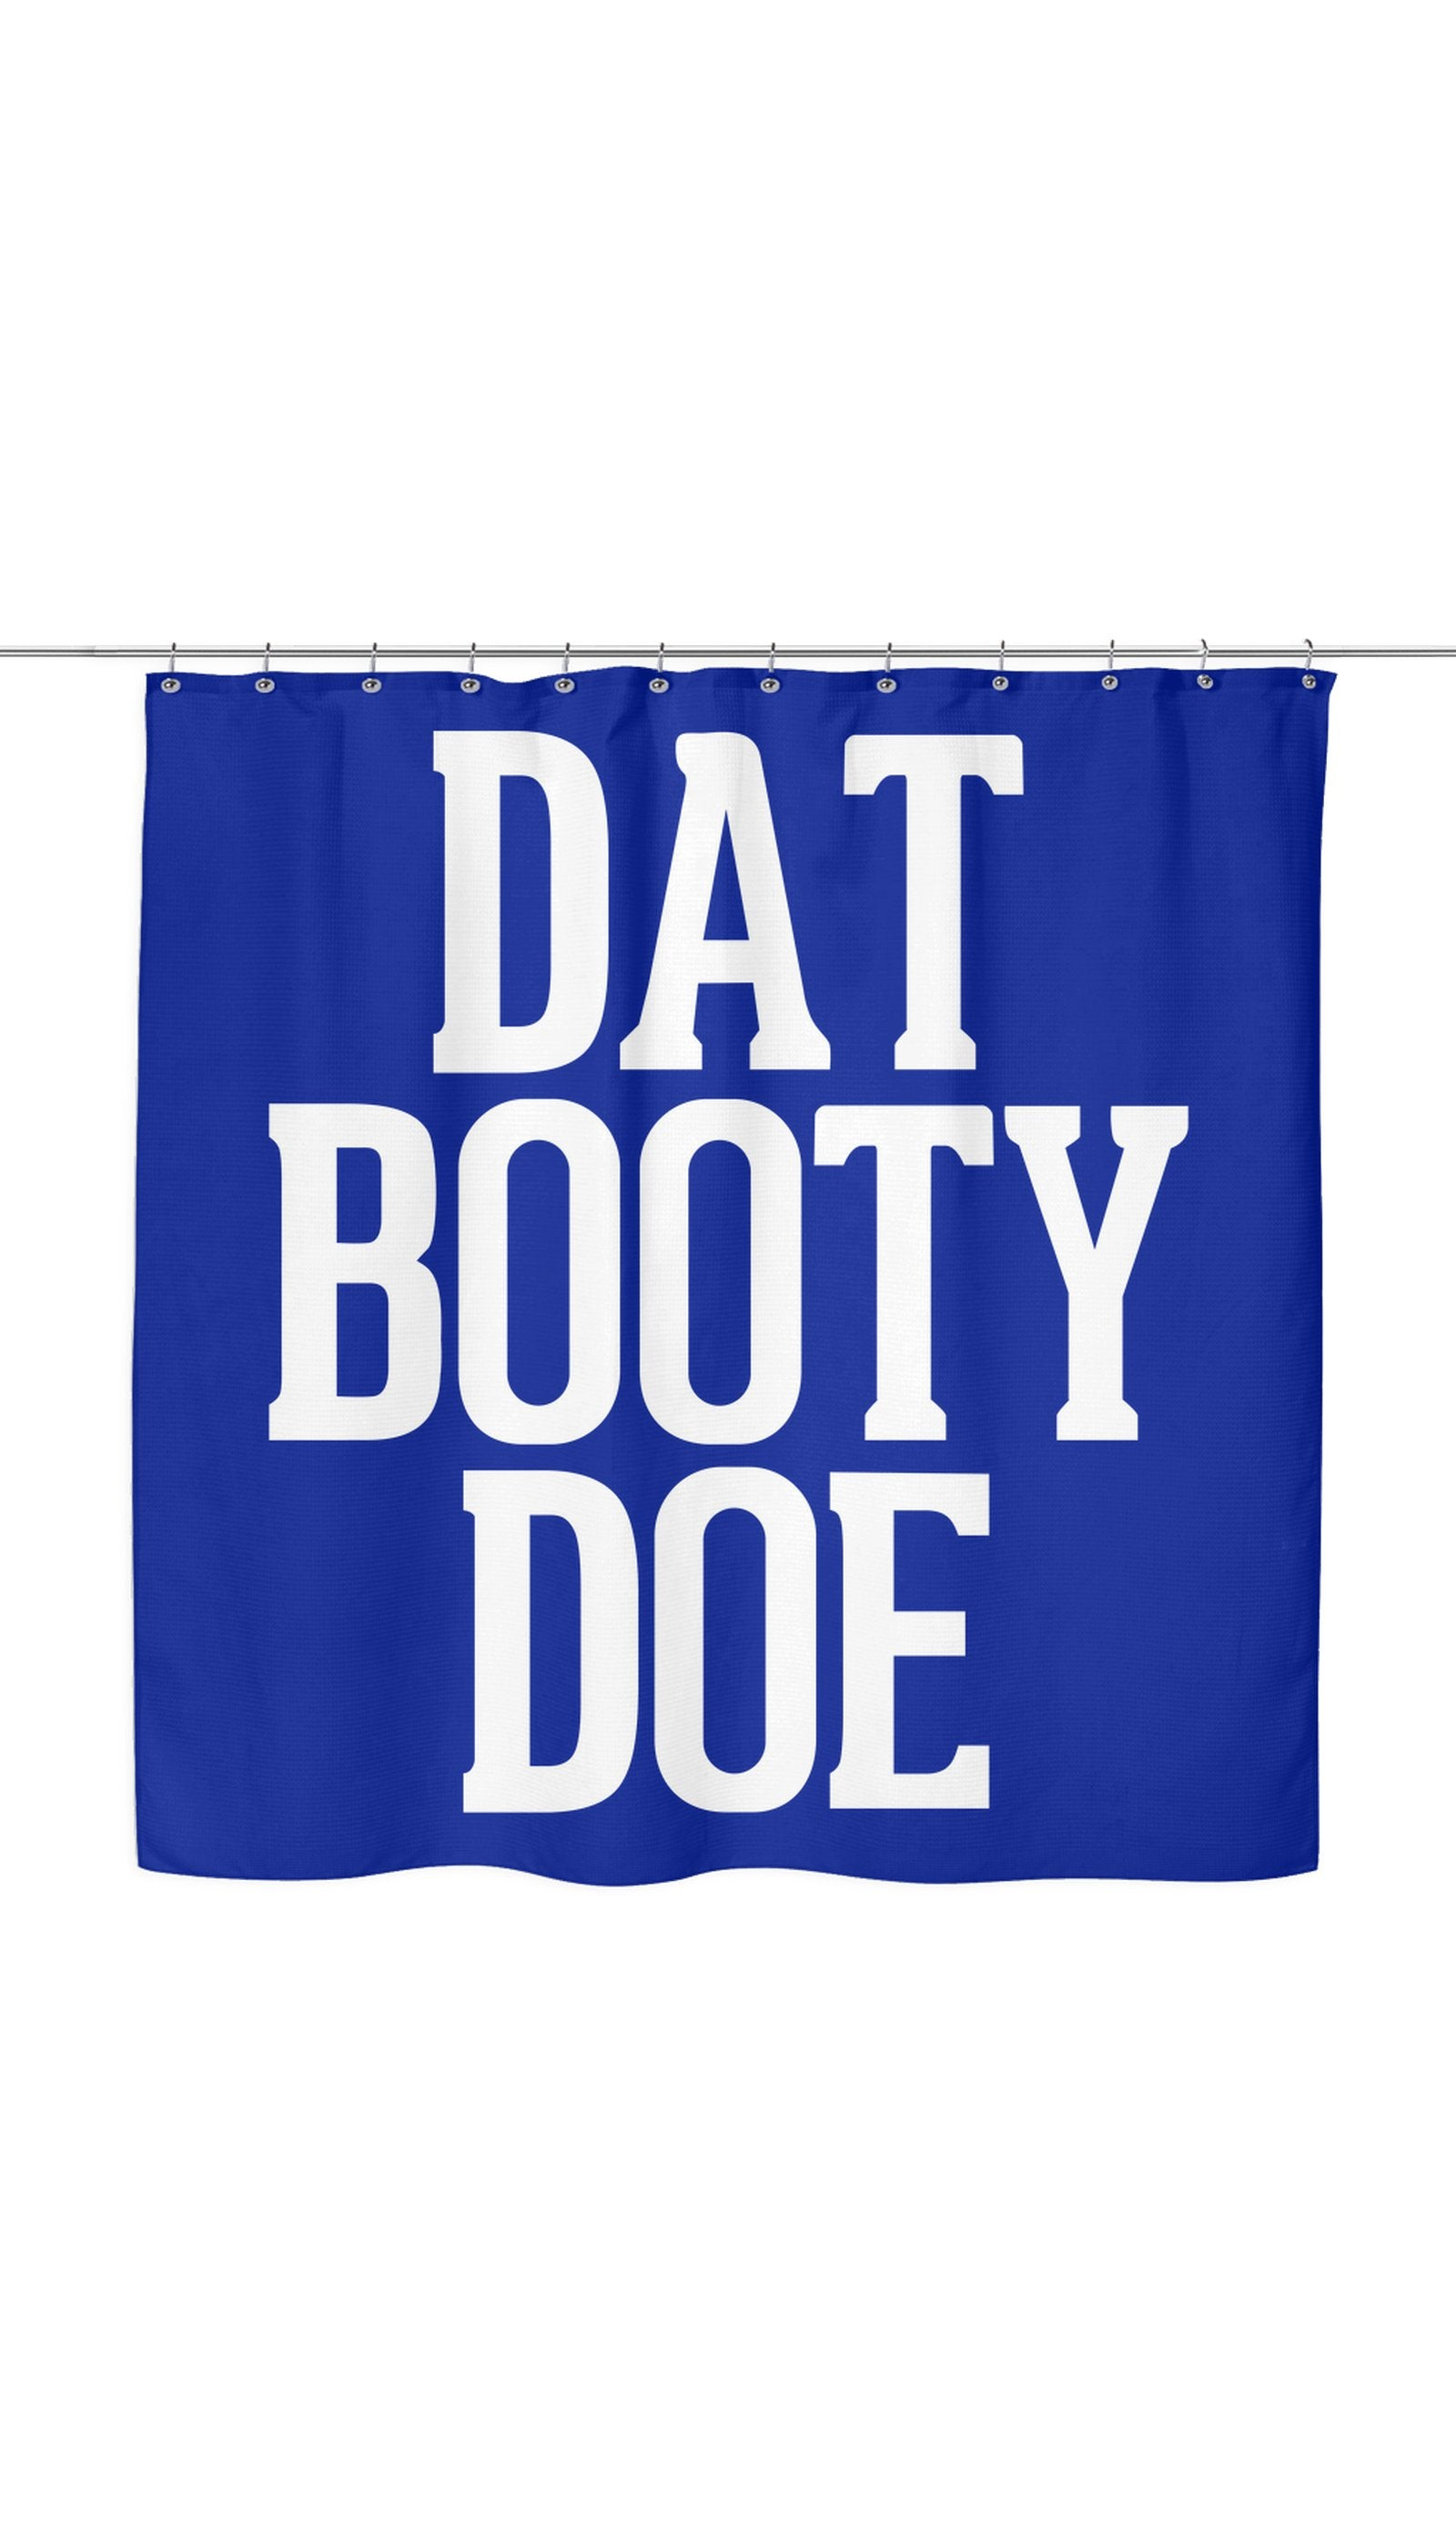 Dat Booty Doe Shower Curtain